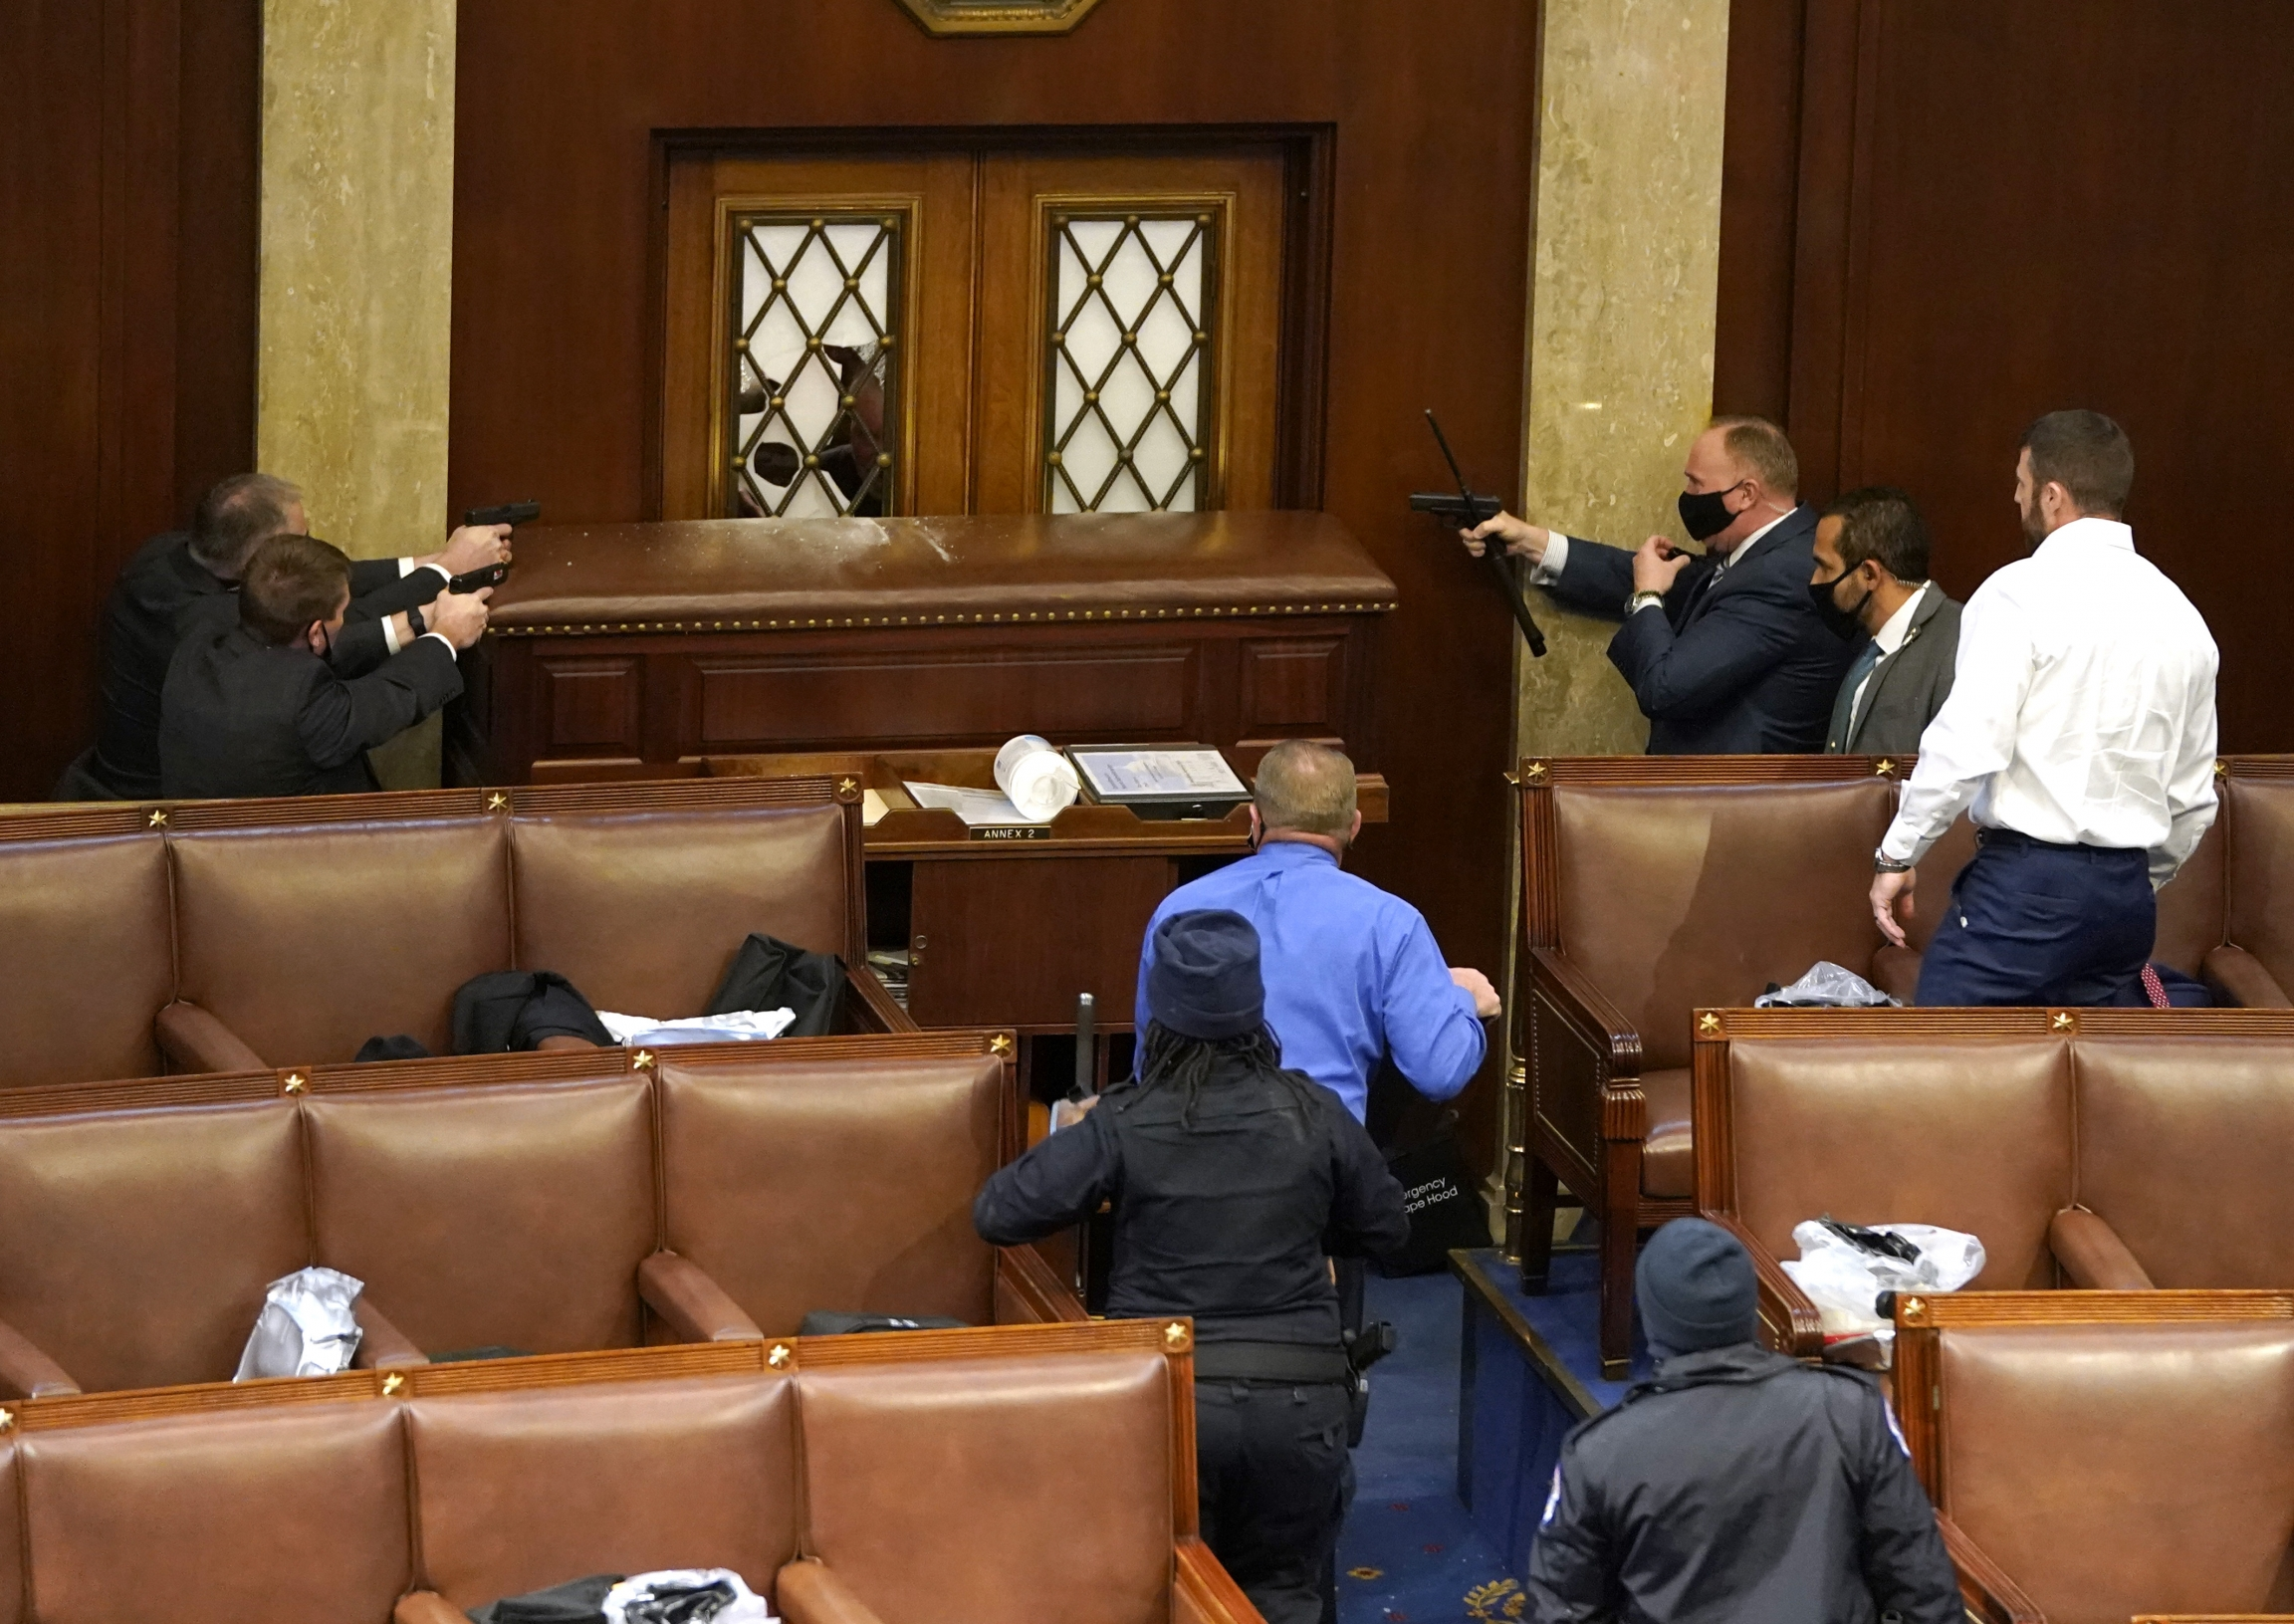 US Capitol police officers point their guns at a door that was vandalized in the House Chamber during a joint session of Congress on Jan.06, 2021, in Washington, DC.